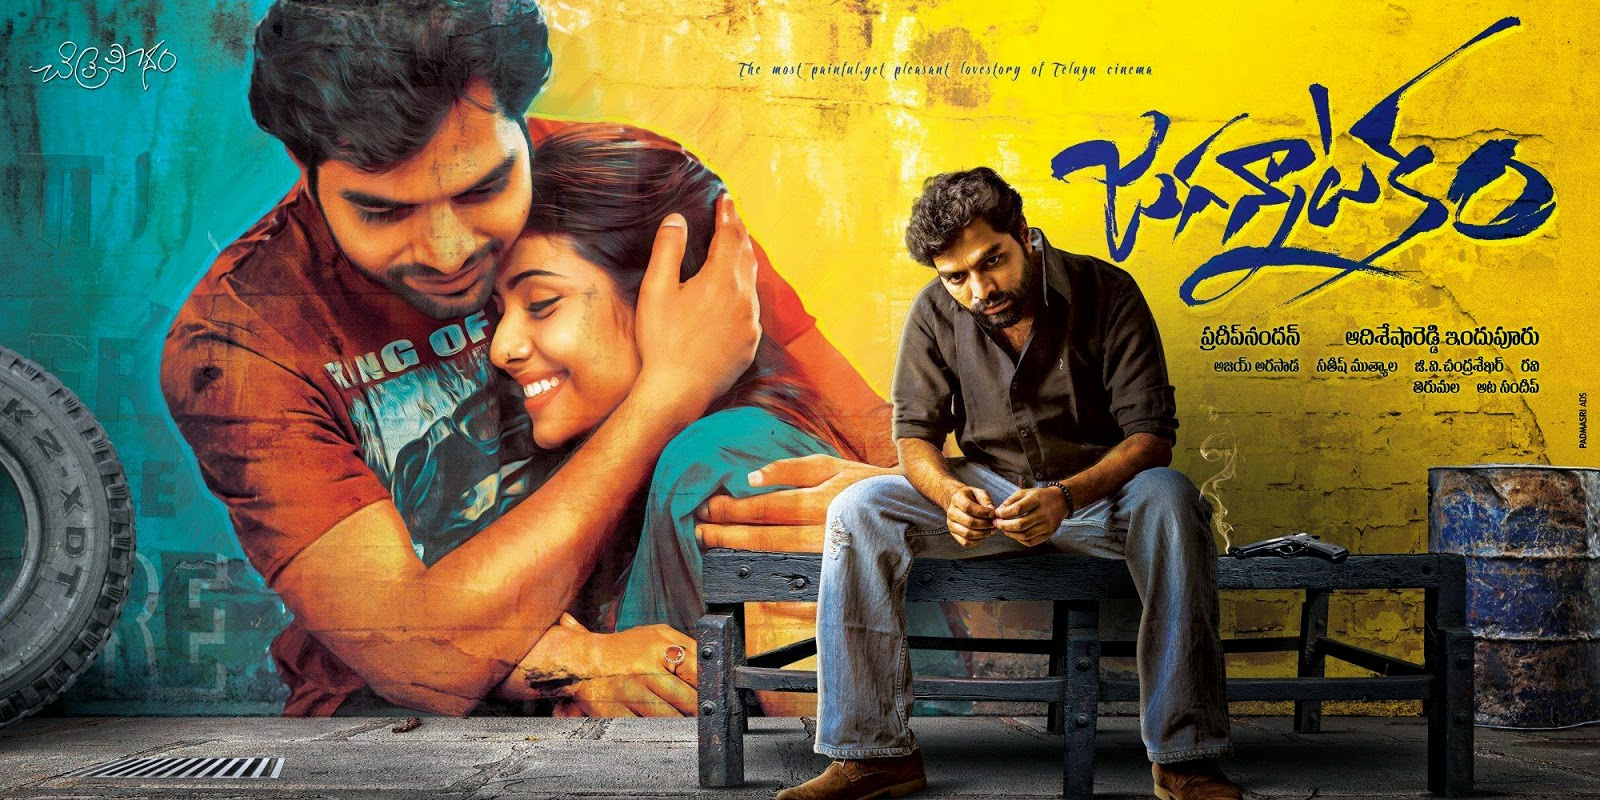 Telugu movie Jo Achyutananda (2016) full star cast and crew wiki, Nara Rohit, Naga Shourya, Regina Cassandra, release date, poster, Trailer, Songs list, actress, actors name, Jo Achyutananda first look Pics, wallpaper